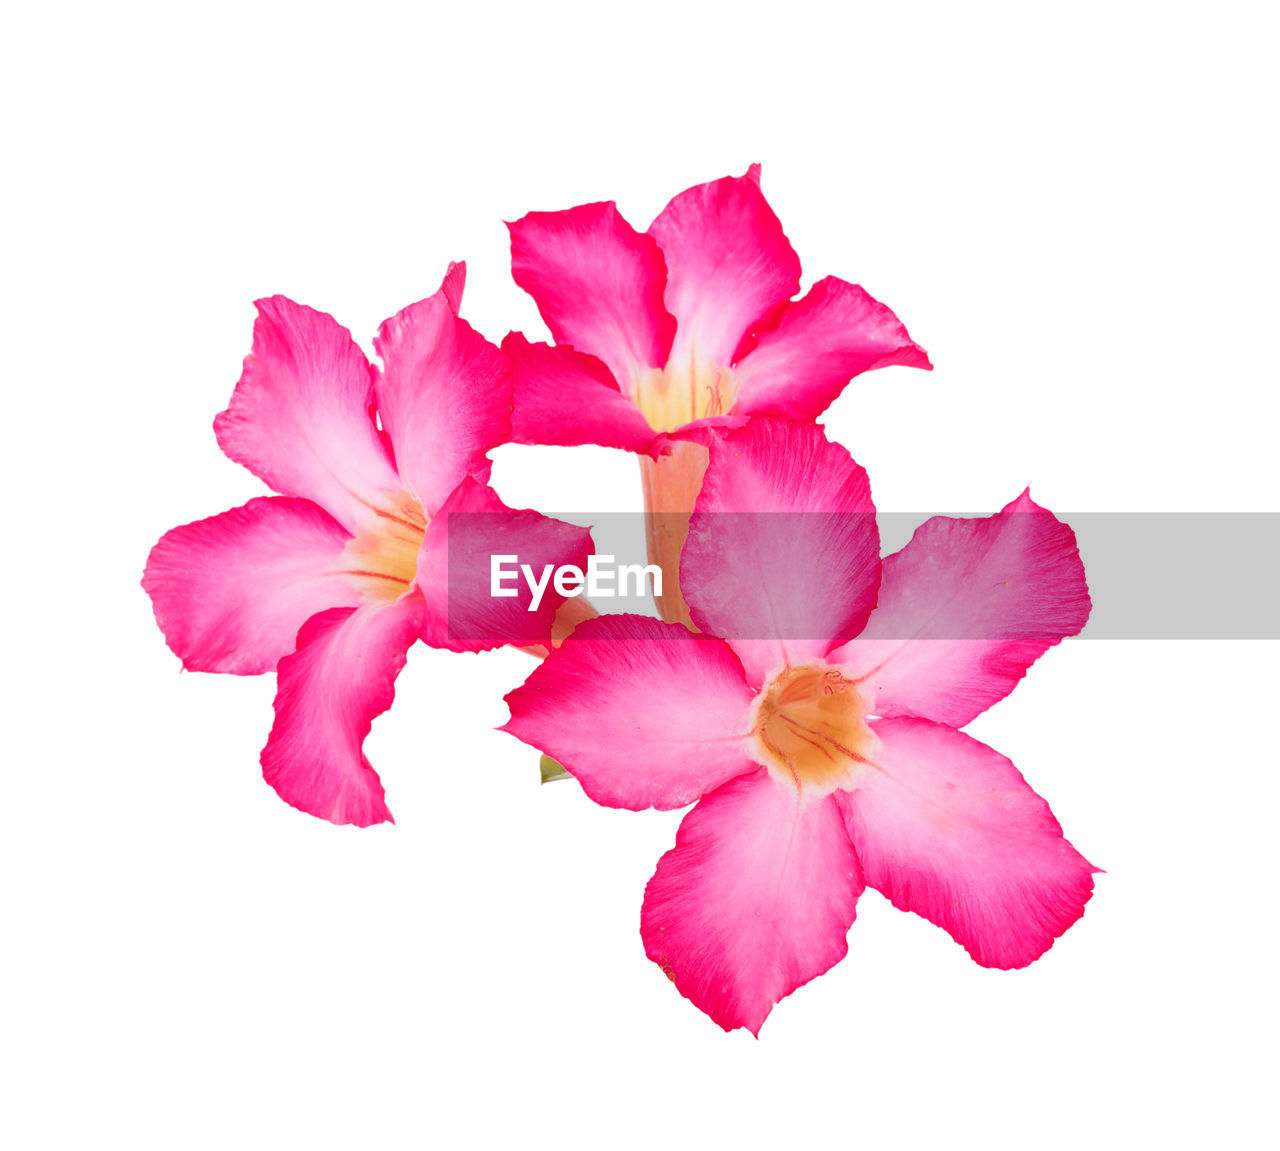 flowering plant, flower, petal, studio shot, beauty in nature, vulnerability, fragility, pink color, freshness, white background, close-up, inflorescence, flower head, plant, indoors, cut out, no people, nature, copy space, growth